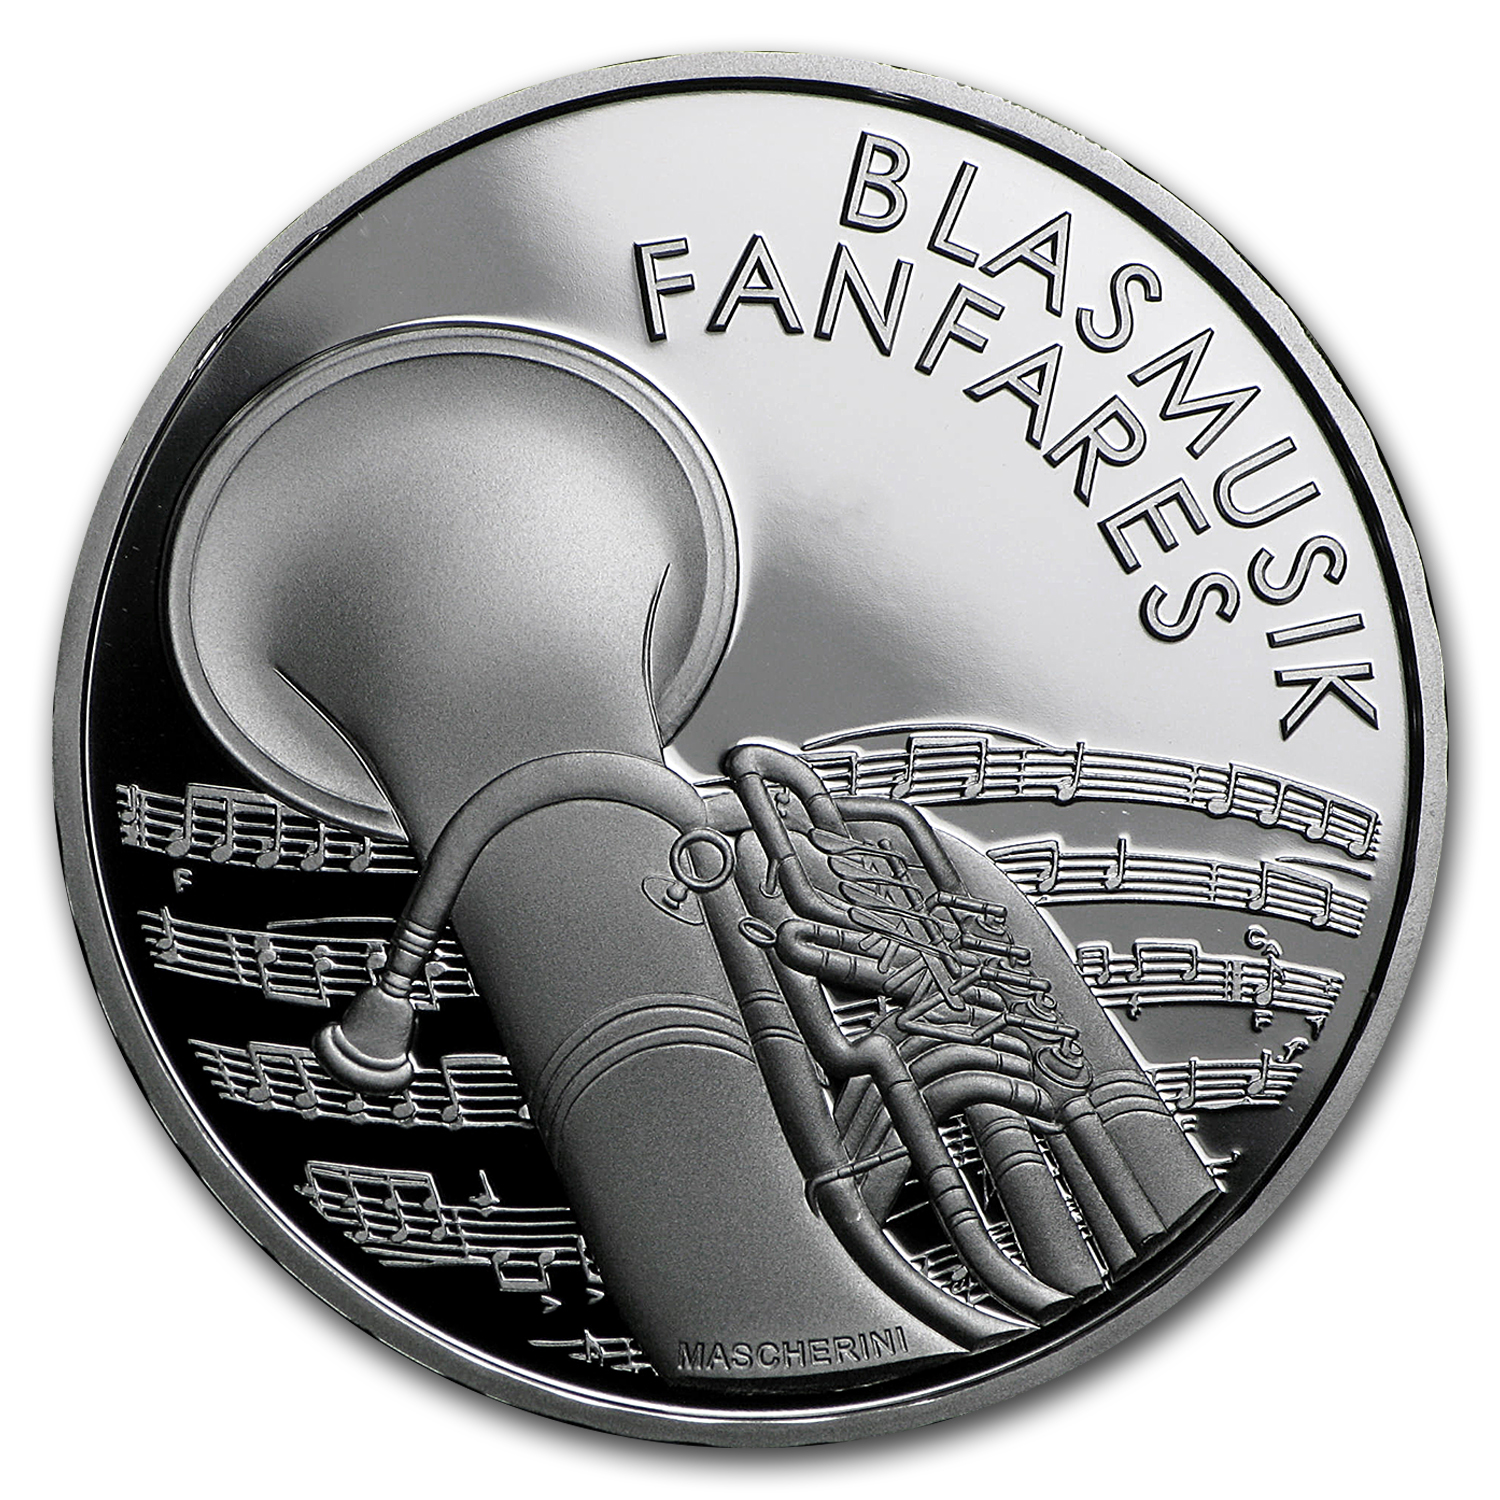 2016 Switzerland Proof Silver 20 CHF Brass Bands